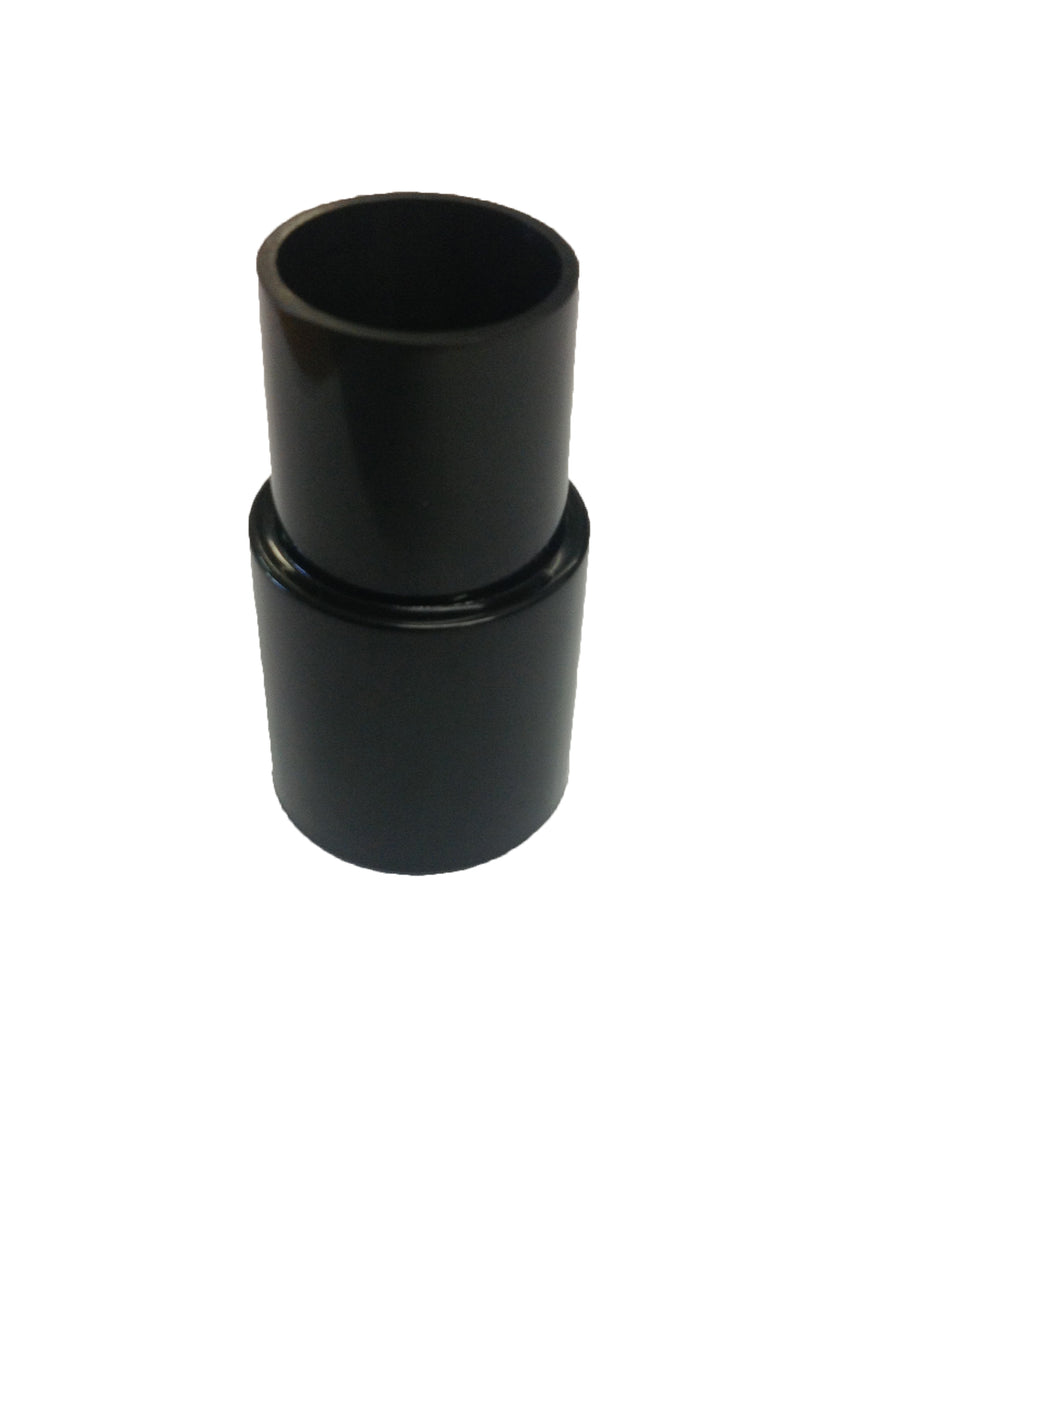 FILTA ADAPTER INCREASER 32MM FLOOR TOOL UP TO 35MM TUBE